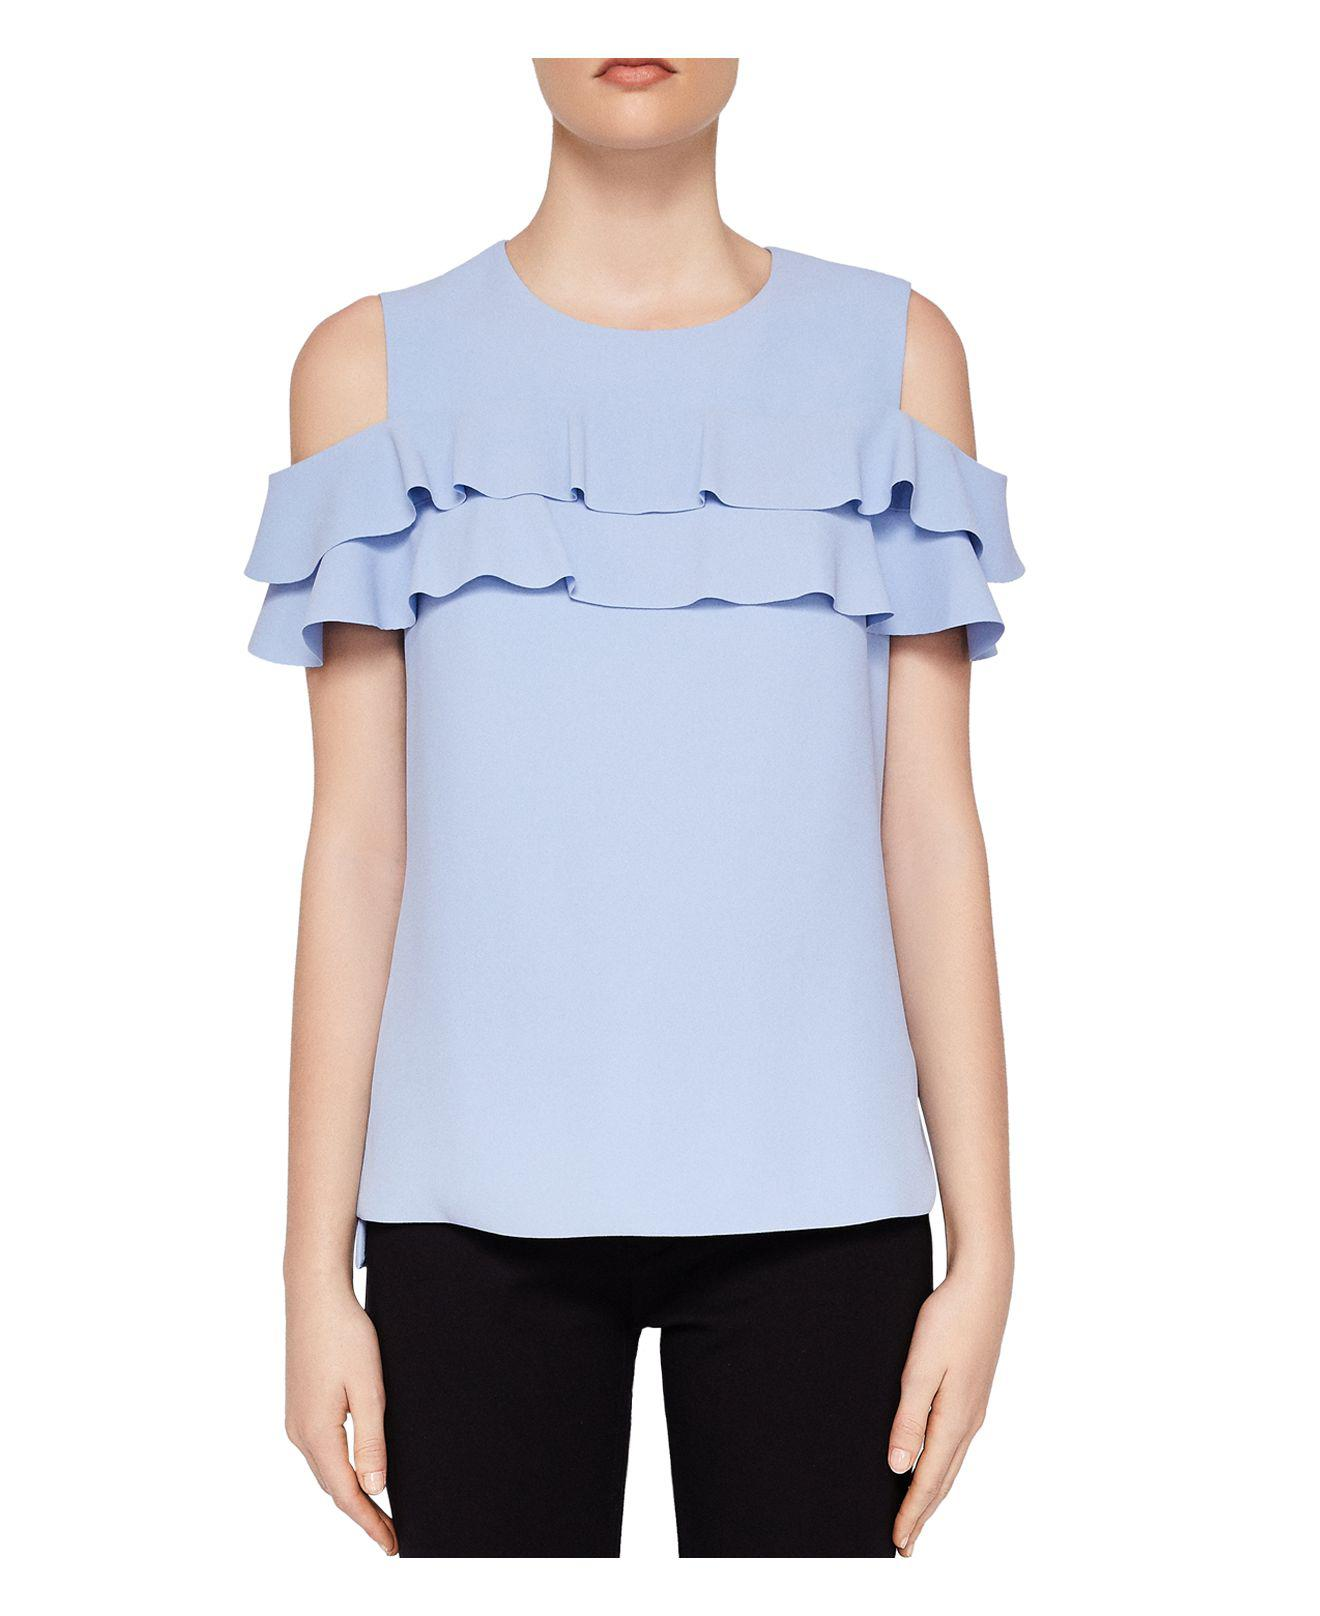 e669c1a7eaf33a Lyst - Ted Baker Hopee Cold-shoulder Frill Top in Blue